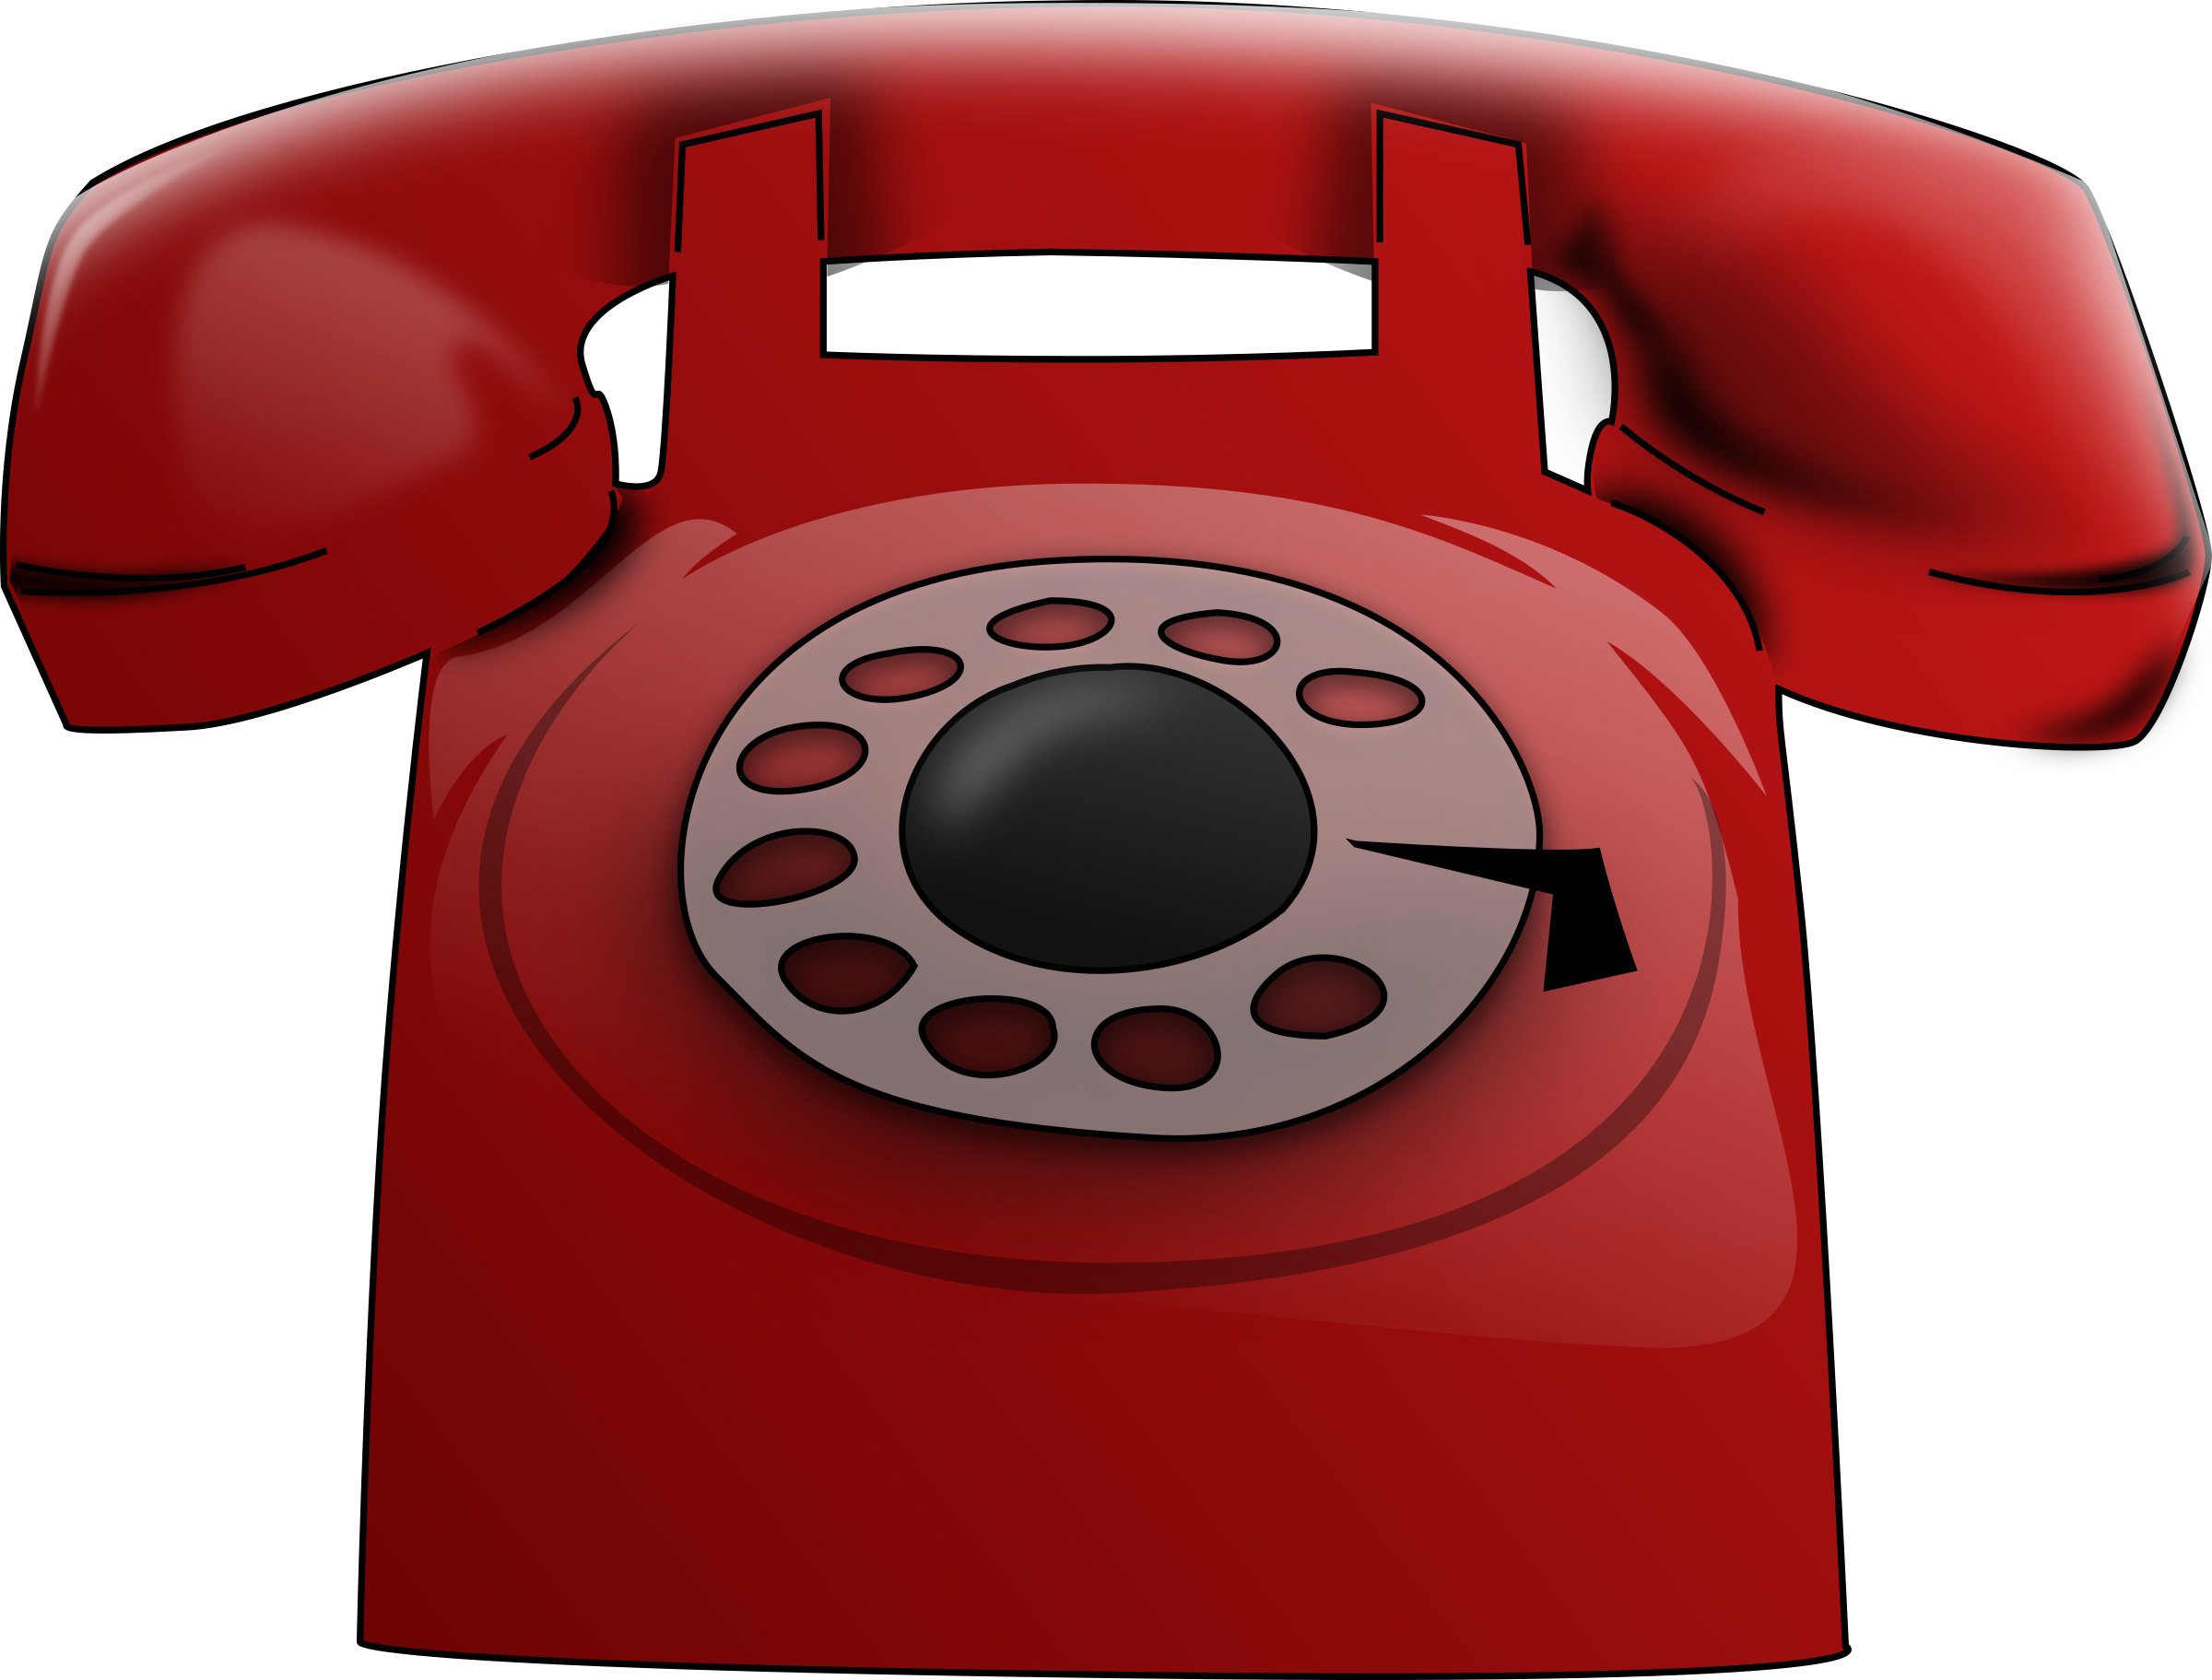 Red icons png free. Telephone clipart rotary dial phone